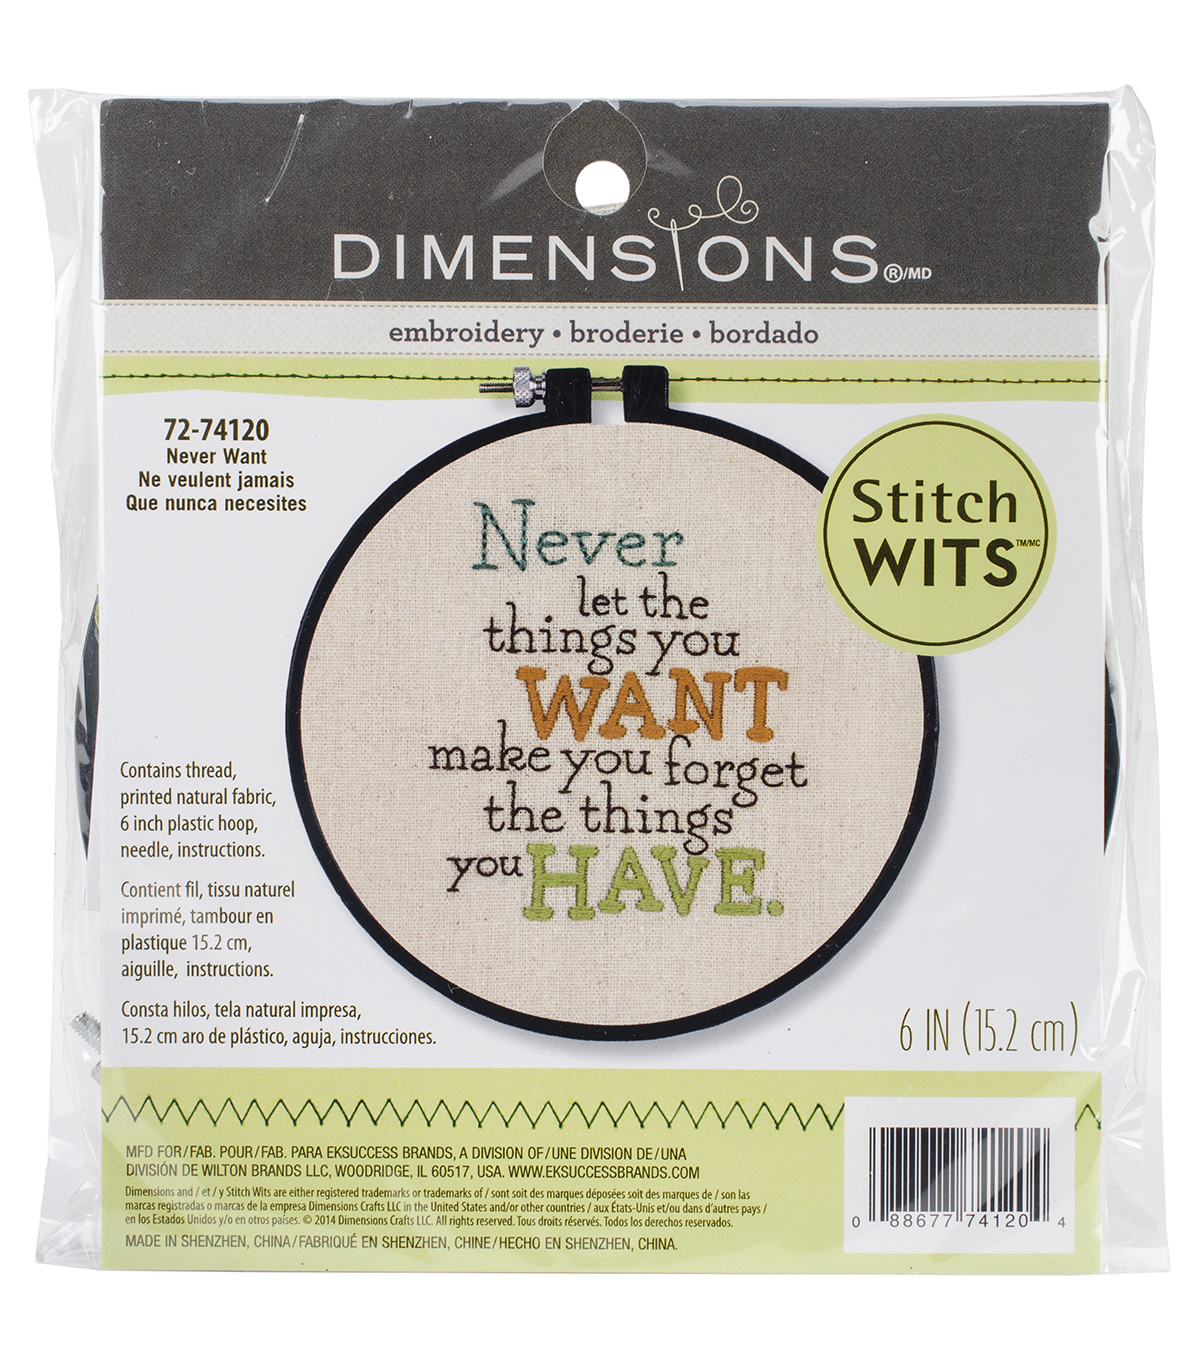 Dimensions- Stitch Wits Never Want Mini Stamped Embroidery Kit